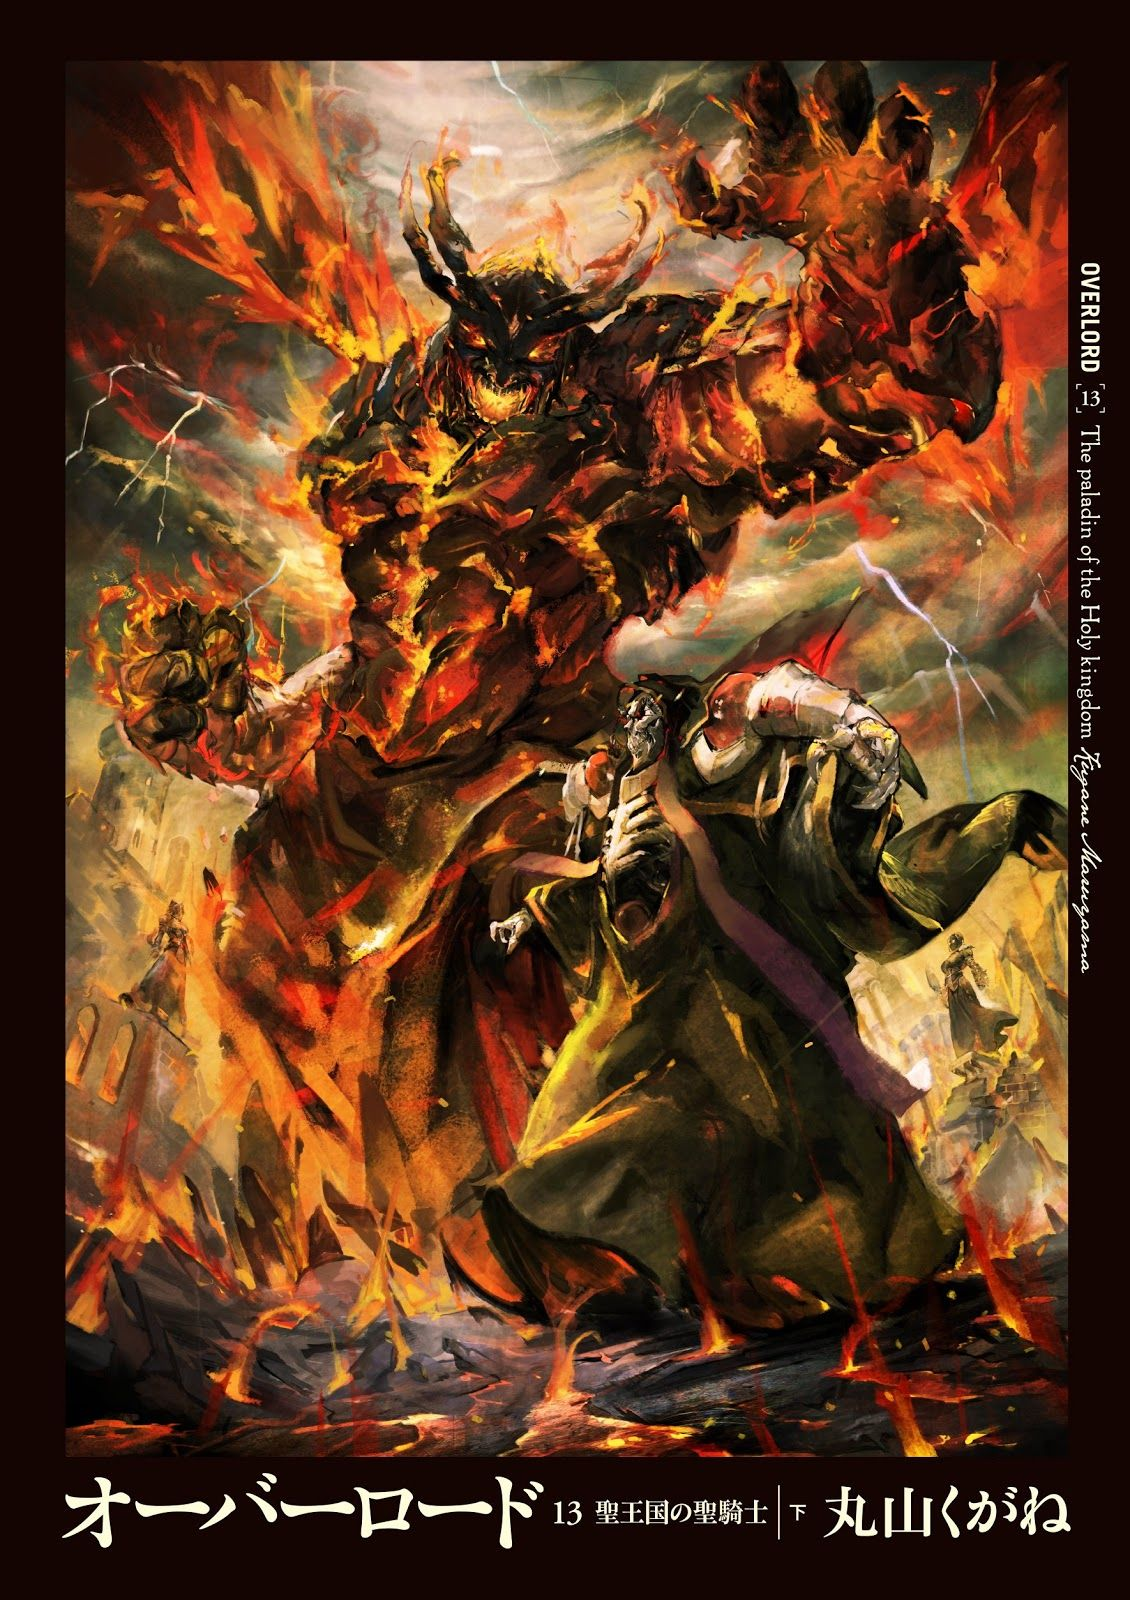 Overlord volume 10 where overlord volume 13 chapter 4